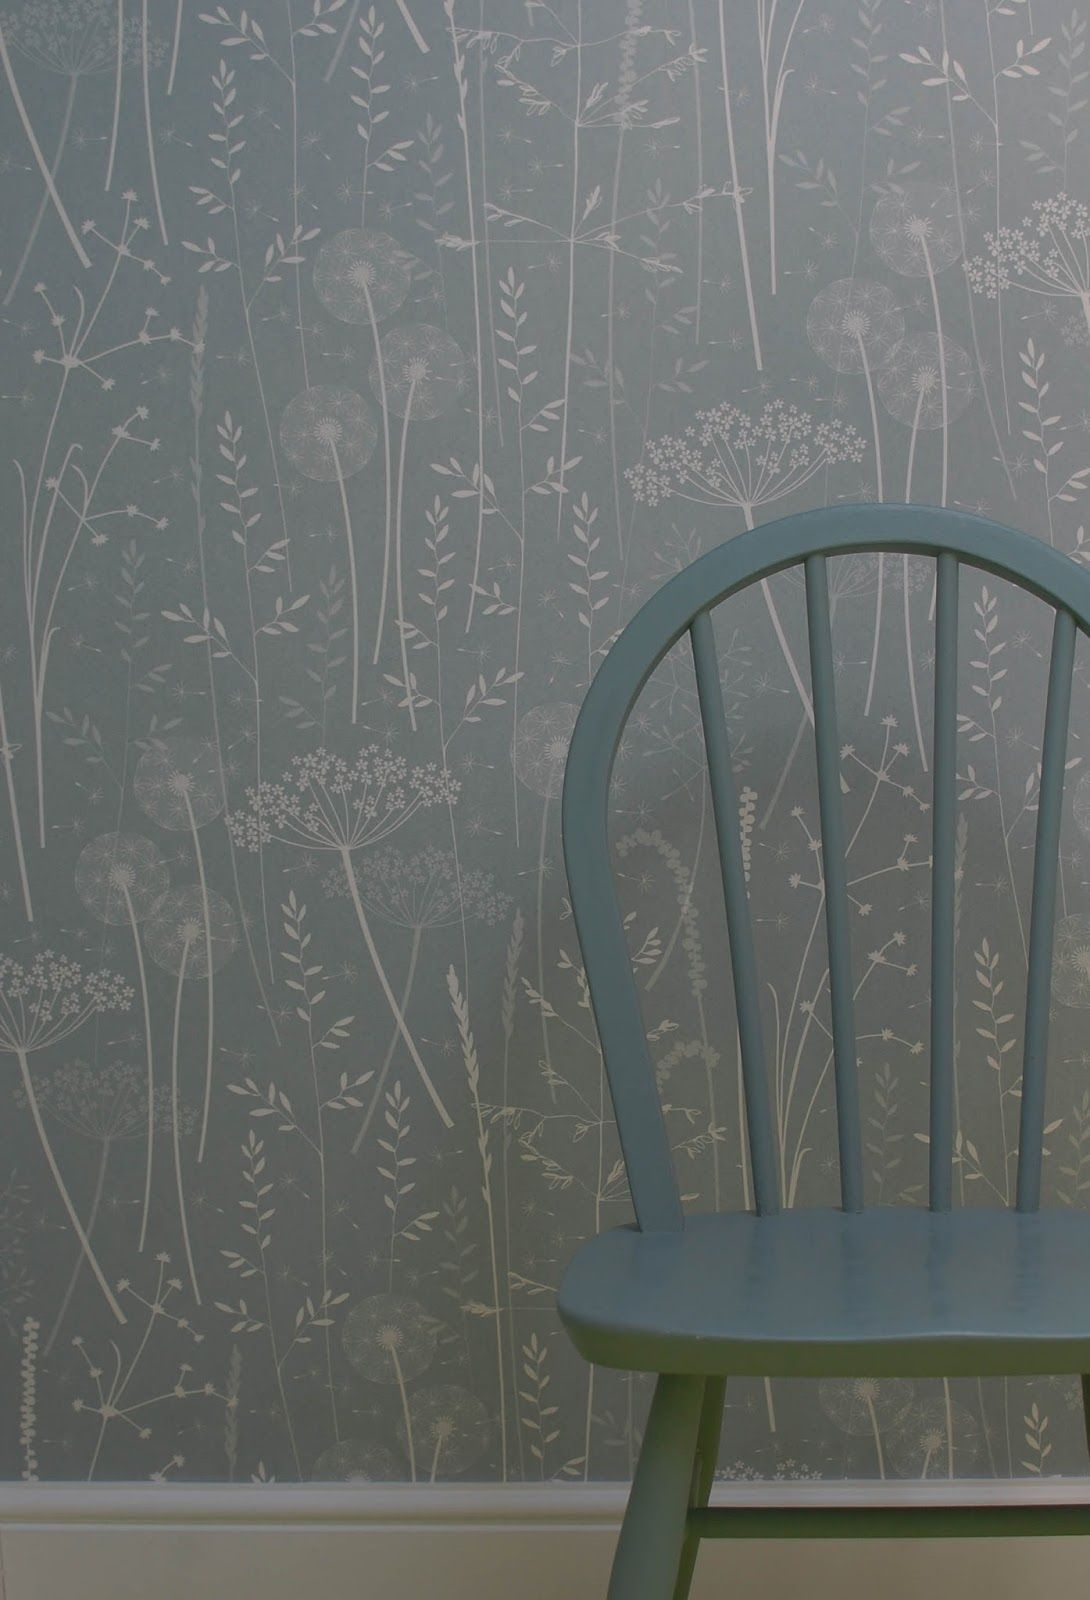 Paper Meadow wallpaper in teal - a quiet and gentle wallpaper design by Hannah Nunn featuring cow parsleys, dandelion clocks, grasses and seeds blowing in the wind.  Shown here at Elmet Farmhouse with a painted ercol chair.